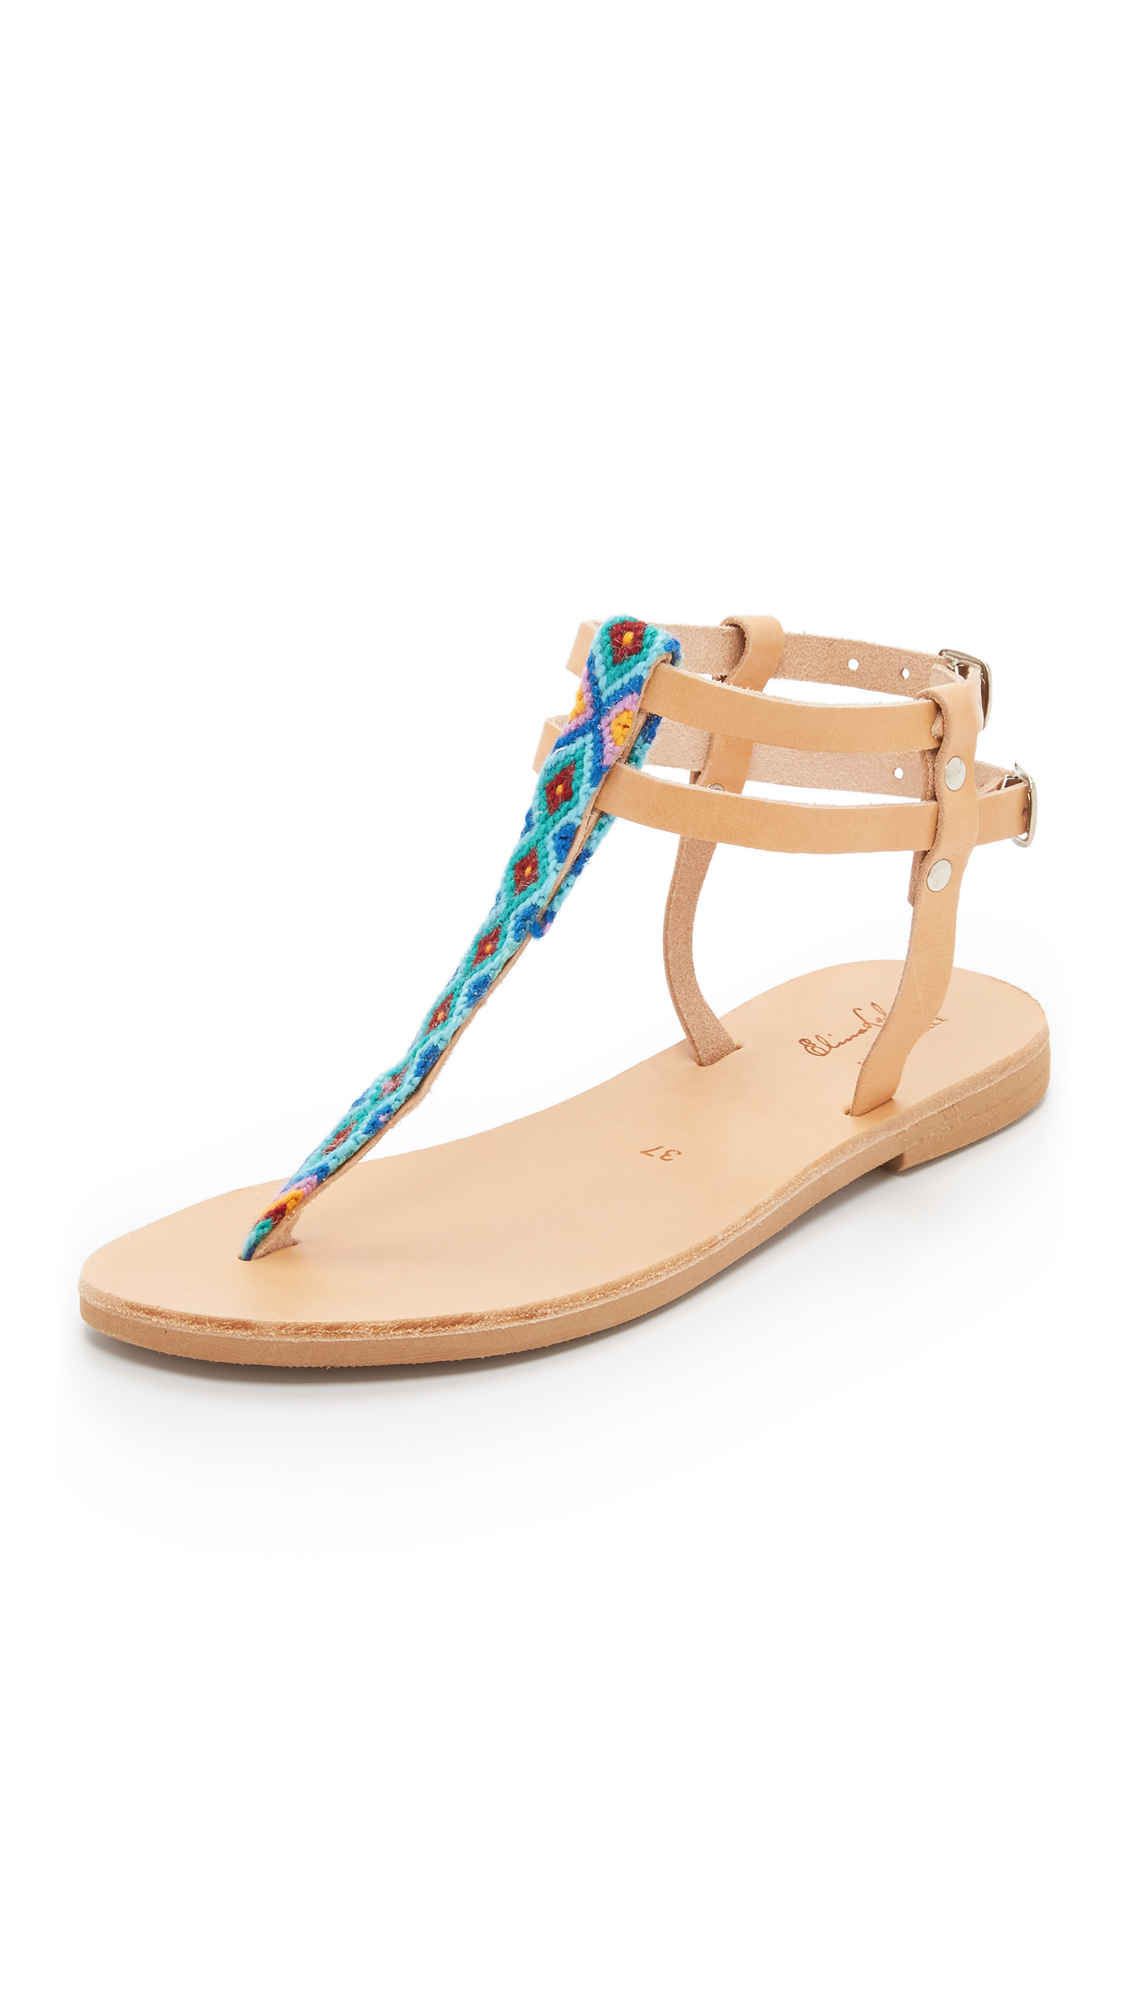 ELINA LEBESSI Sandals free shipping genuine get authentic with paypal cheap online iOoxxWD9